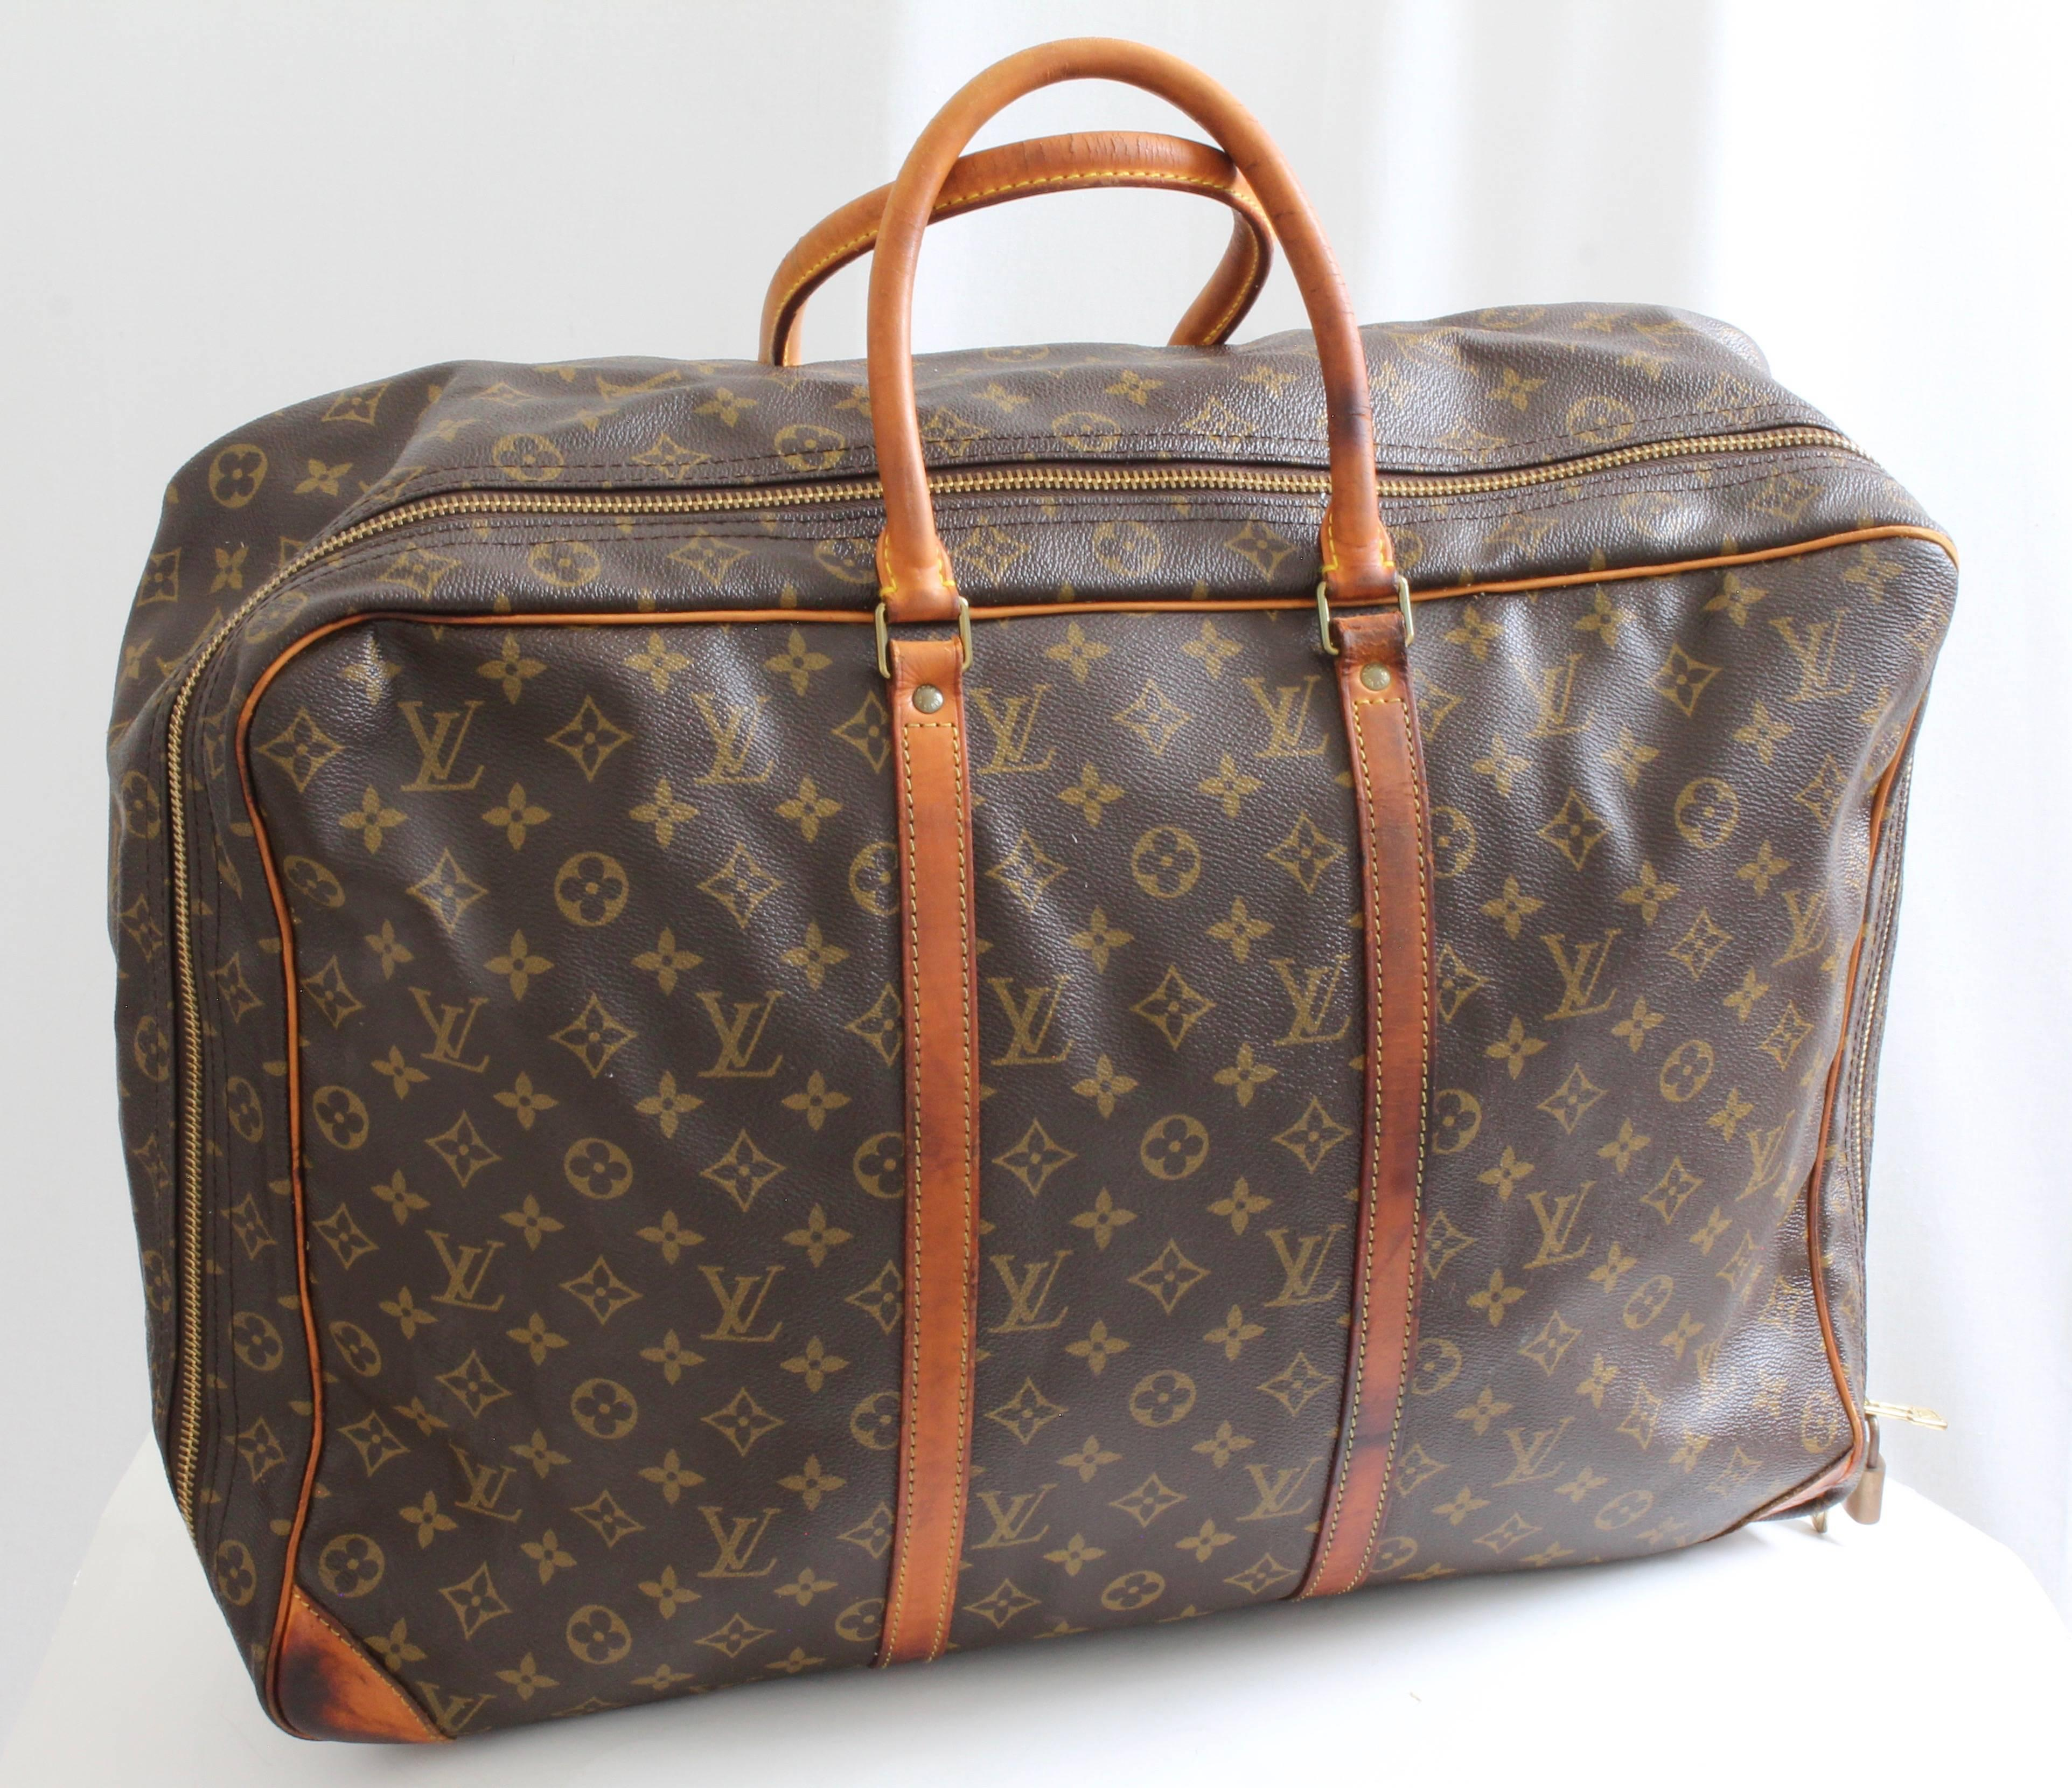 Louis Vuitton Monogram Sirius Suitcase 50cm Luggage Weekender Travel Bag  80s For Sale at 1stdibs 08e2a8394a